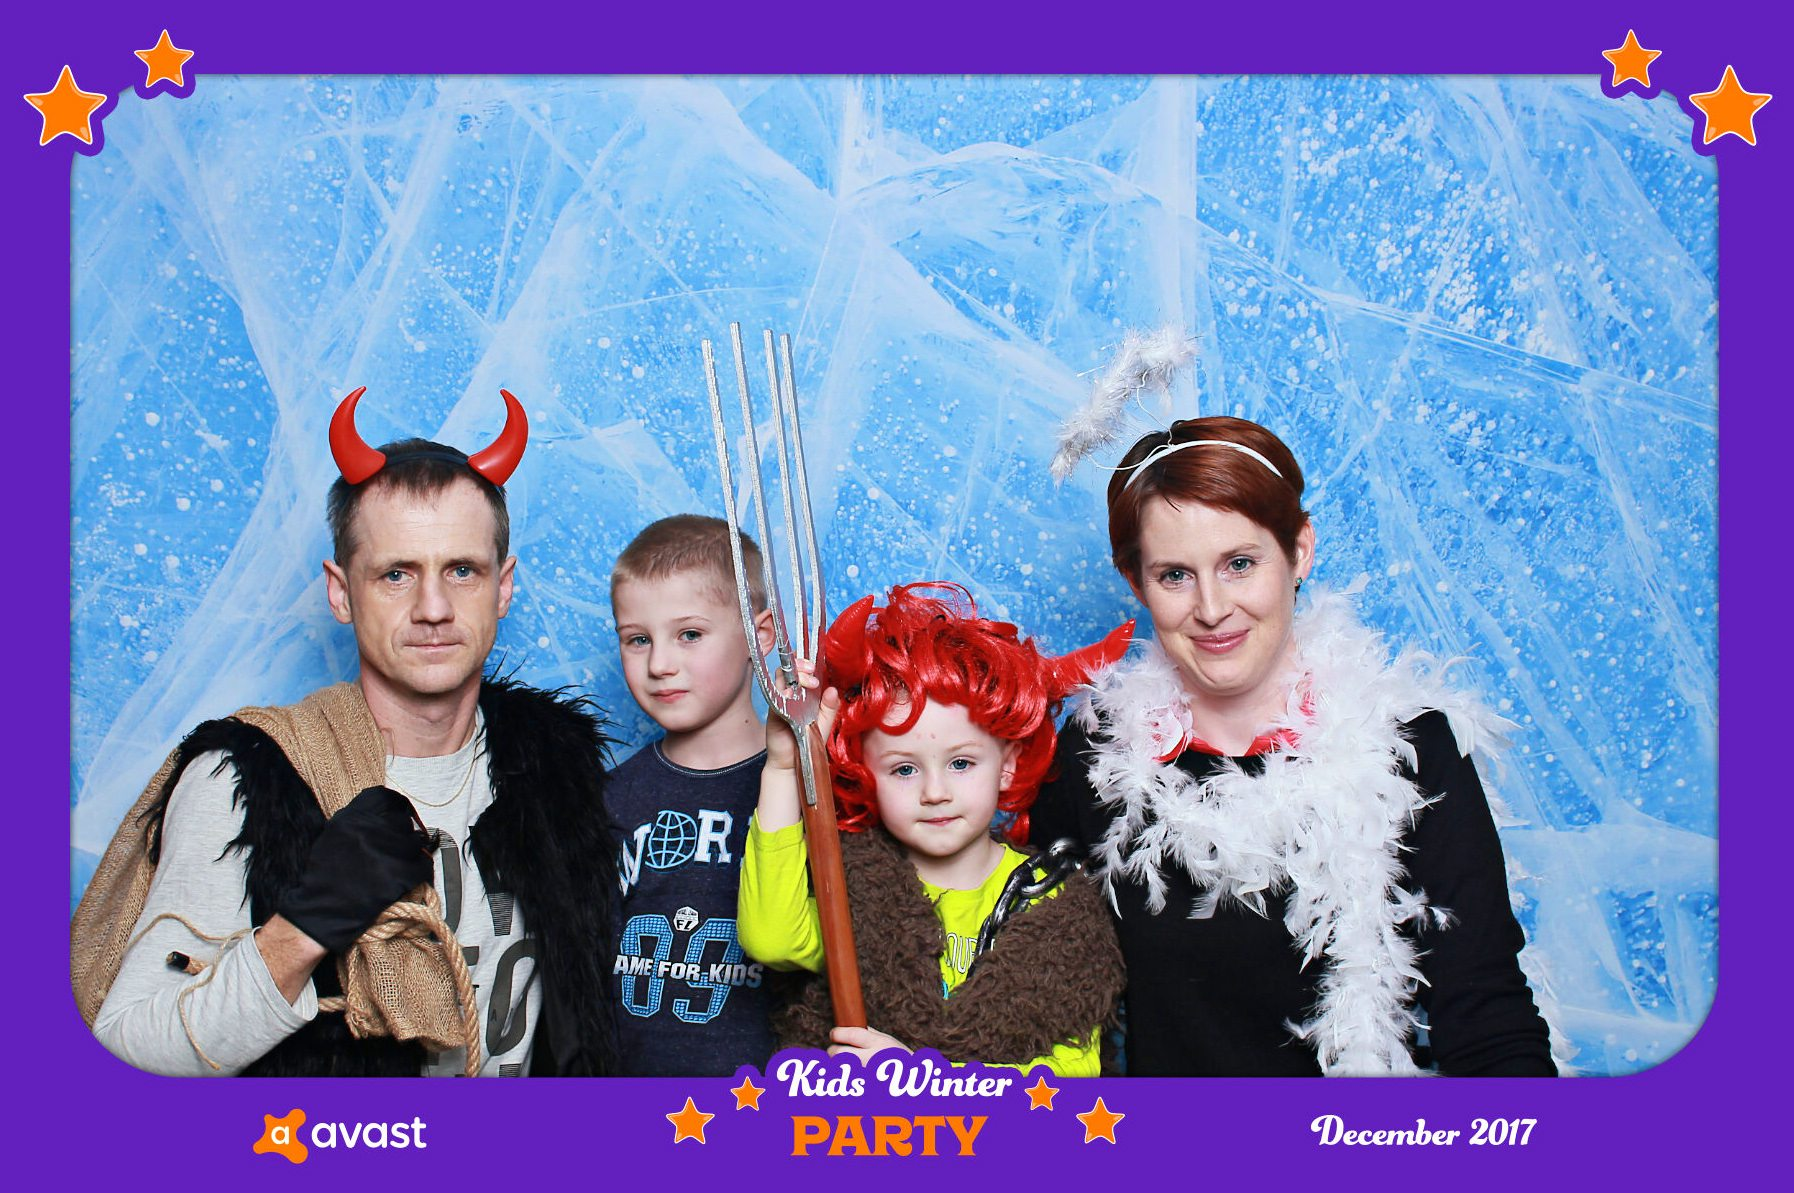 fotokoutek-avast-kids-winter-party-10-12-2017-360537